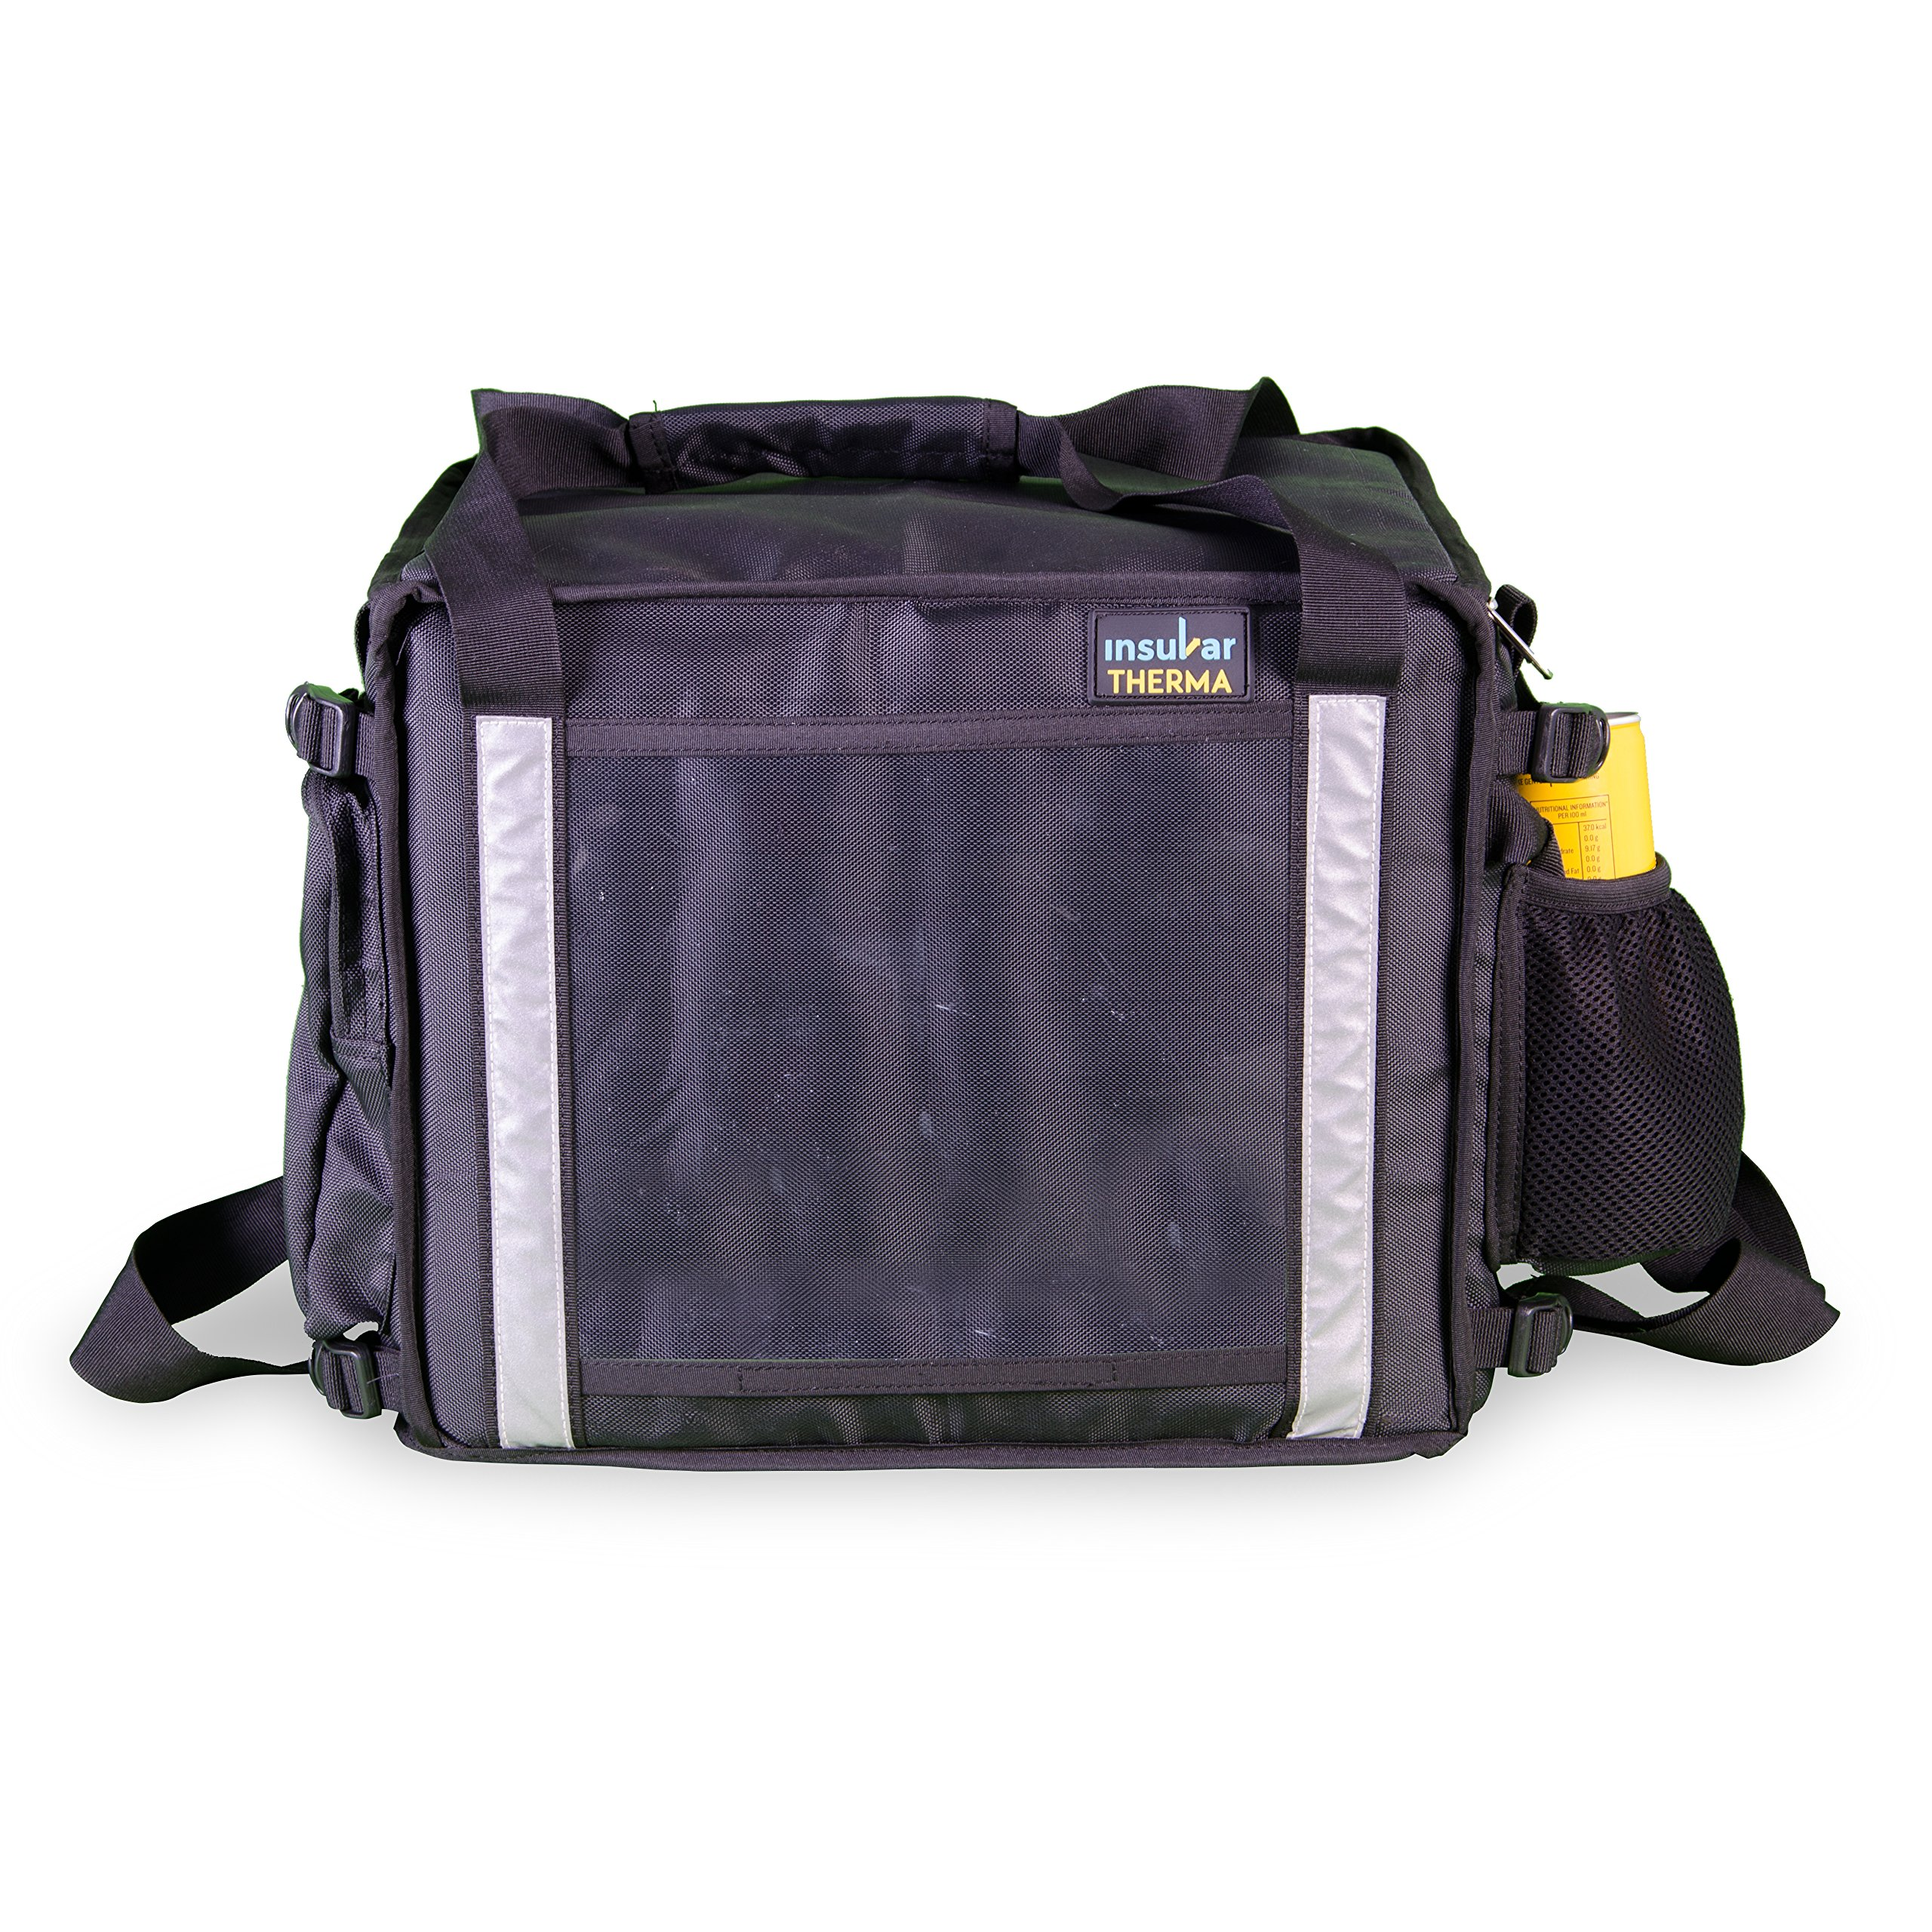 Insular Therma Foldable Standard Meal Bike Delivery Bag - Premium Commercial Insulated hot Food delivery Bag | Water & Stain Repellent | Foldable